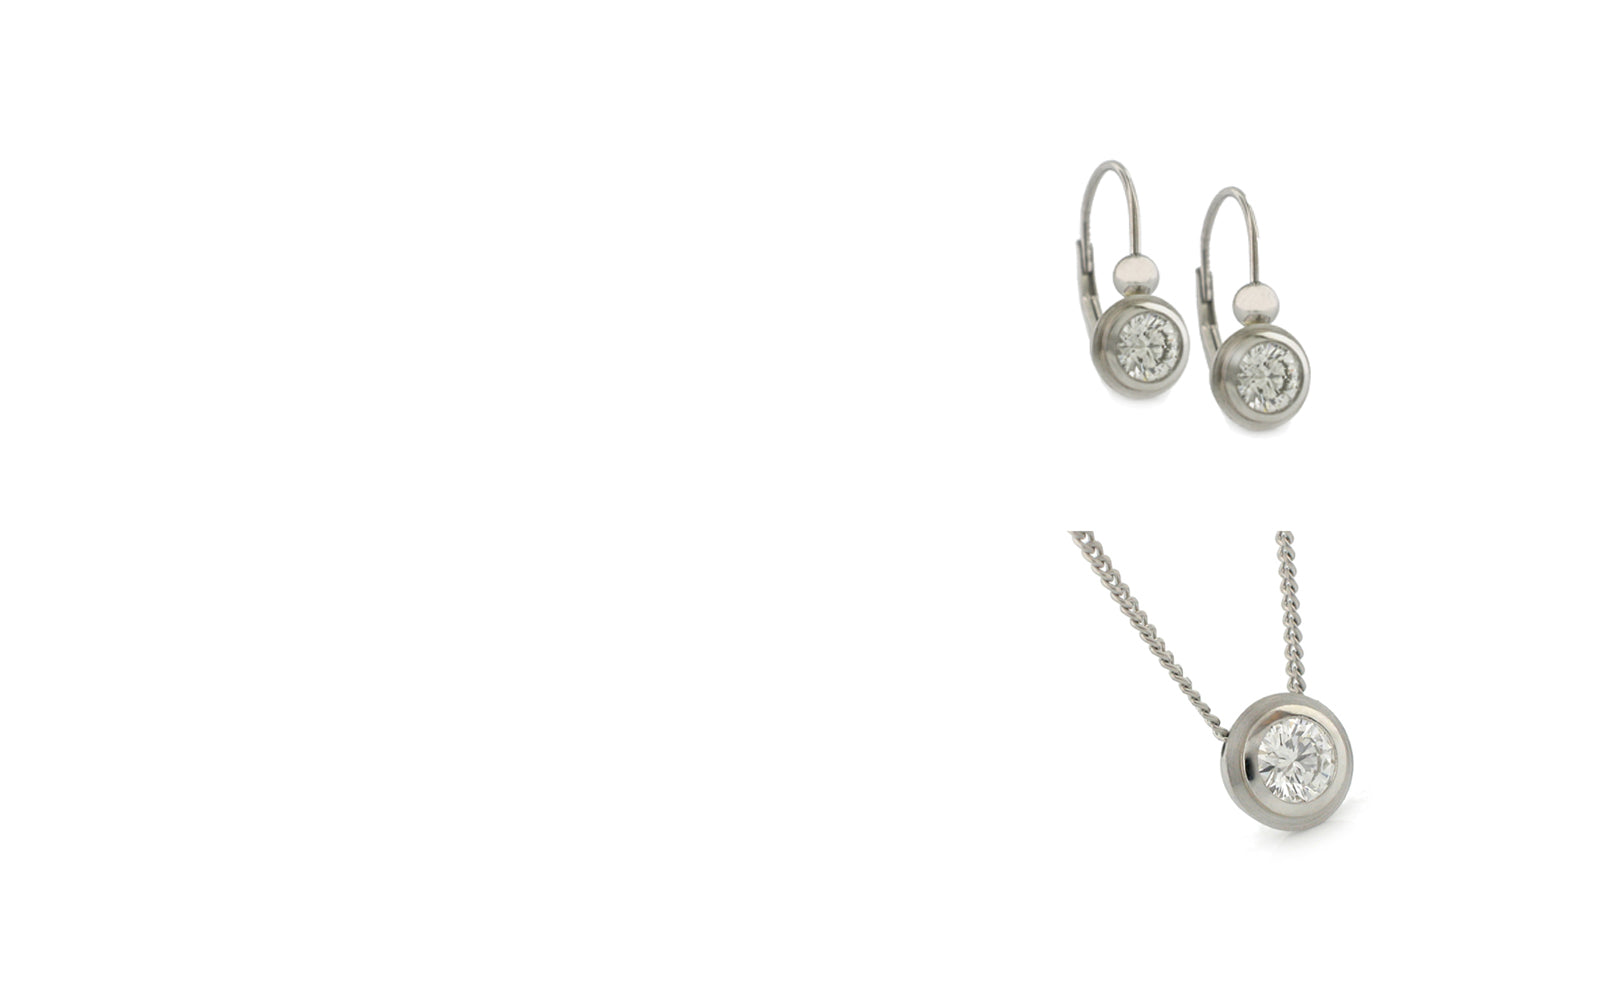 Platinum lever back earrings, in bezels, with .40tcw. of diamonds and a .25ct. matching pendant that slides on a 1 mm chain.